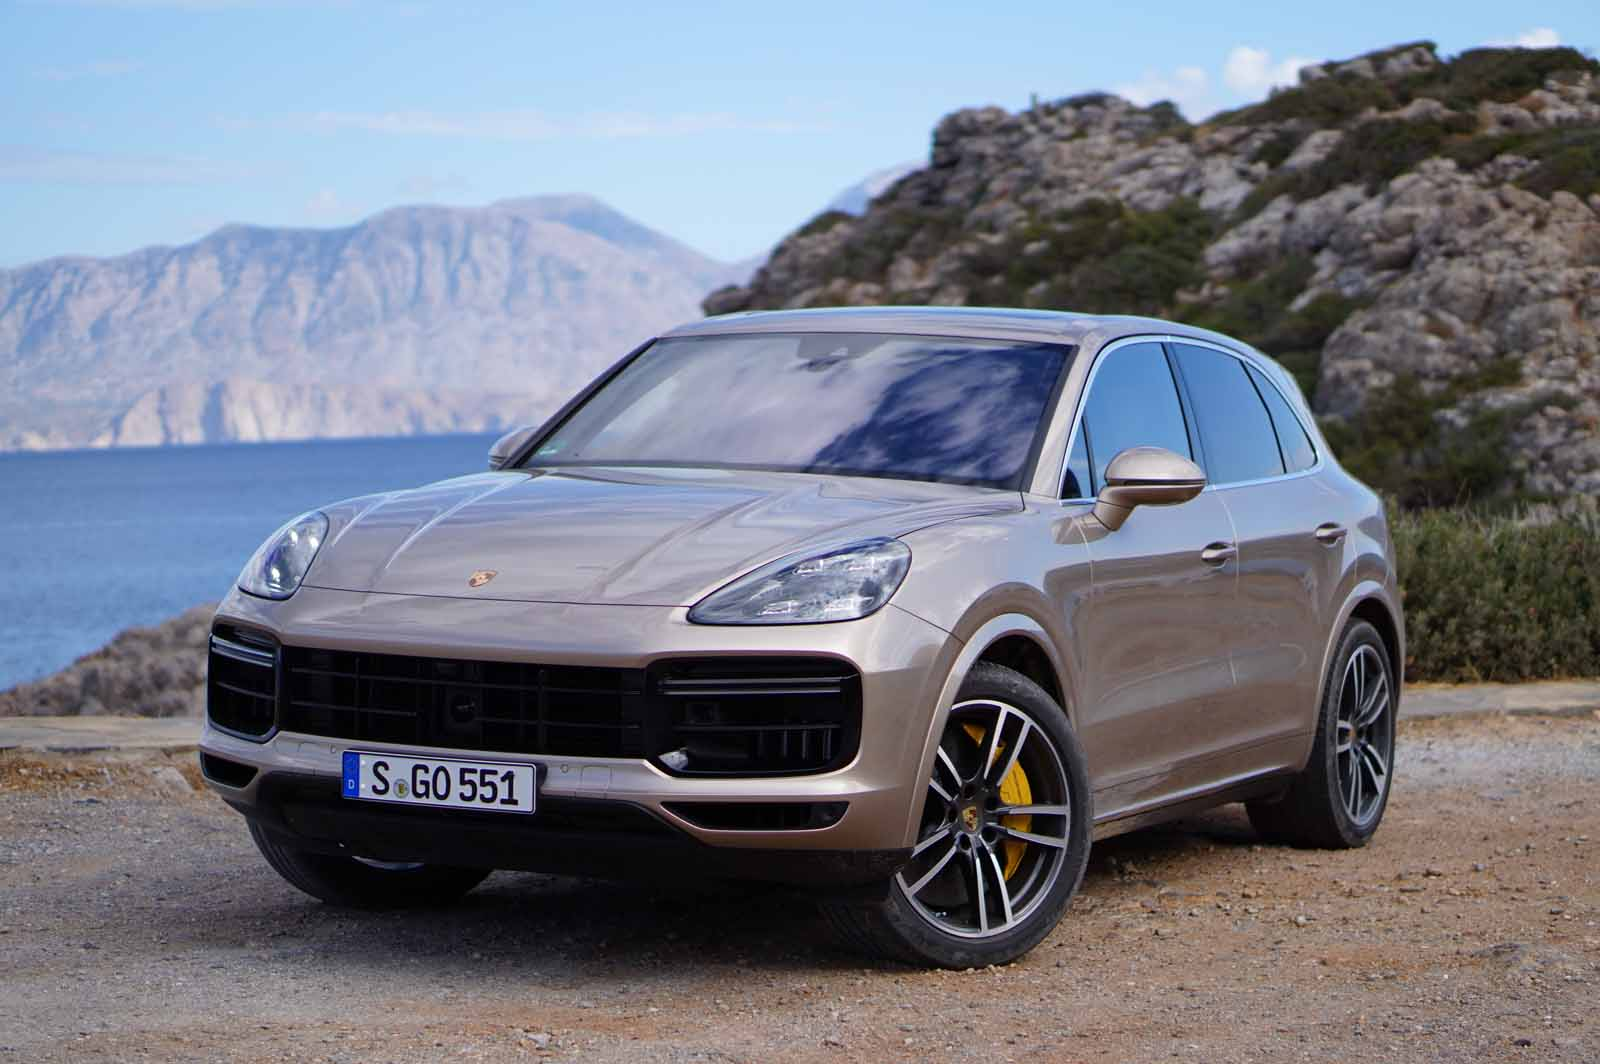 17 Gallery of 2019 Porsche Cayenne First Look Style for 2019 Porsche Cayenne First Look